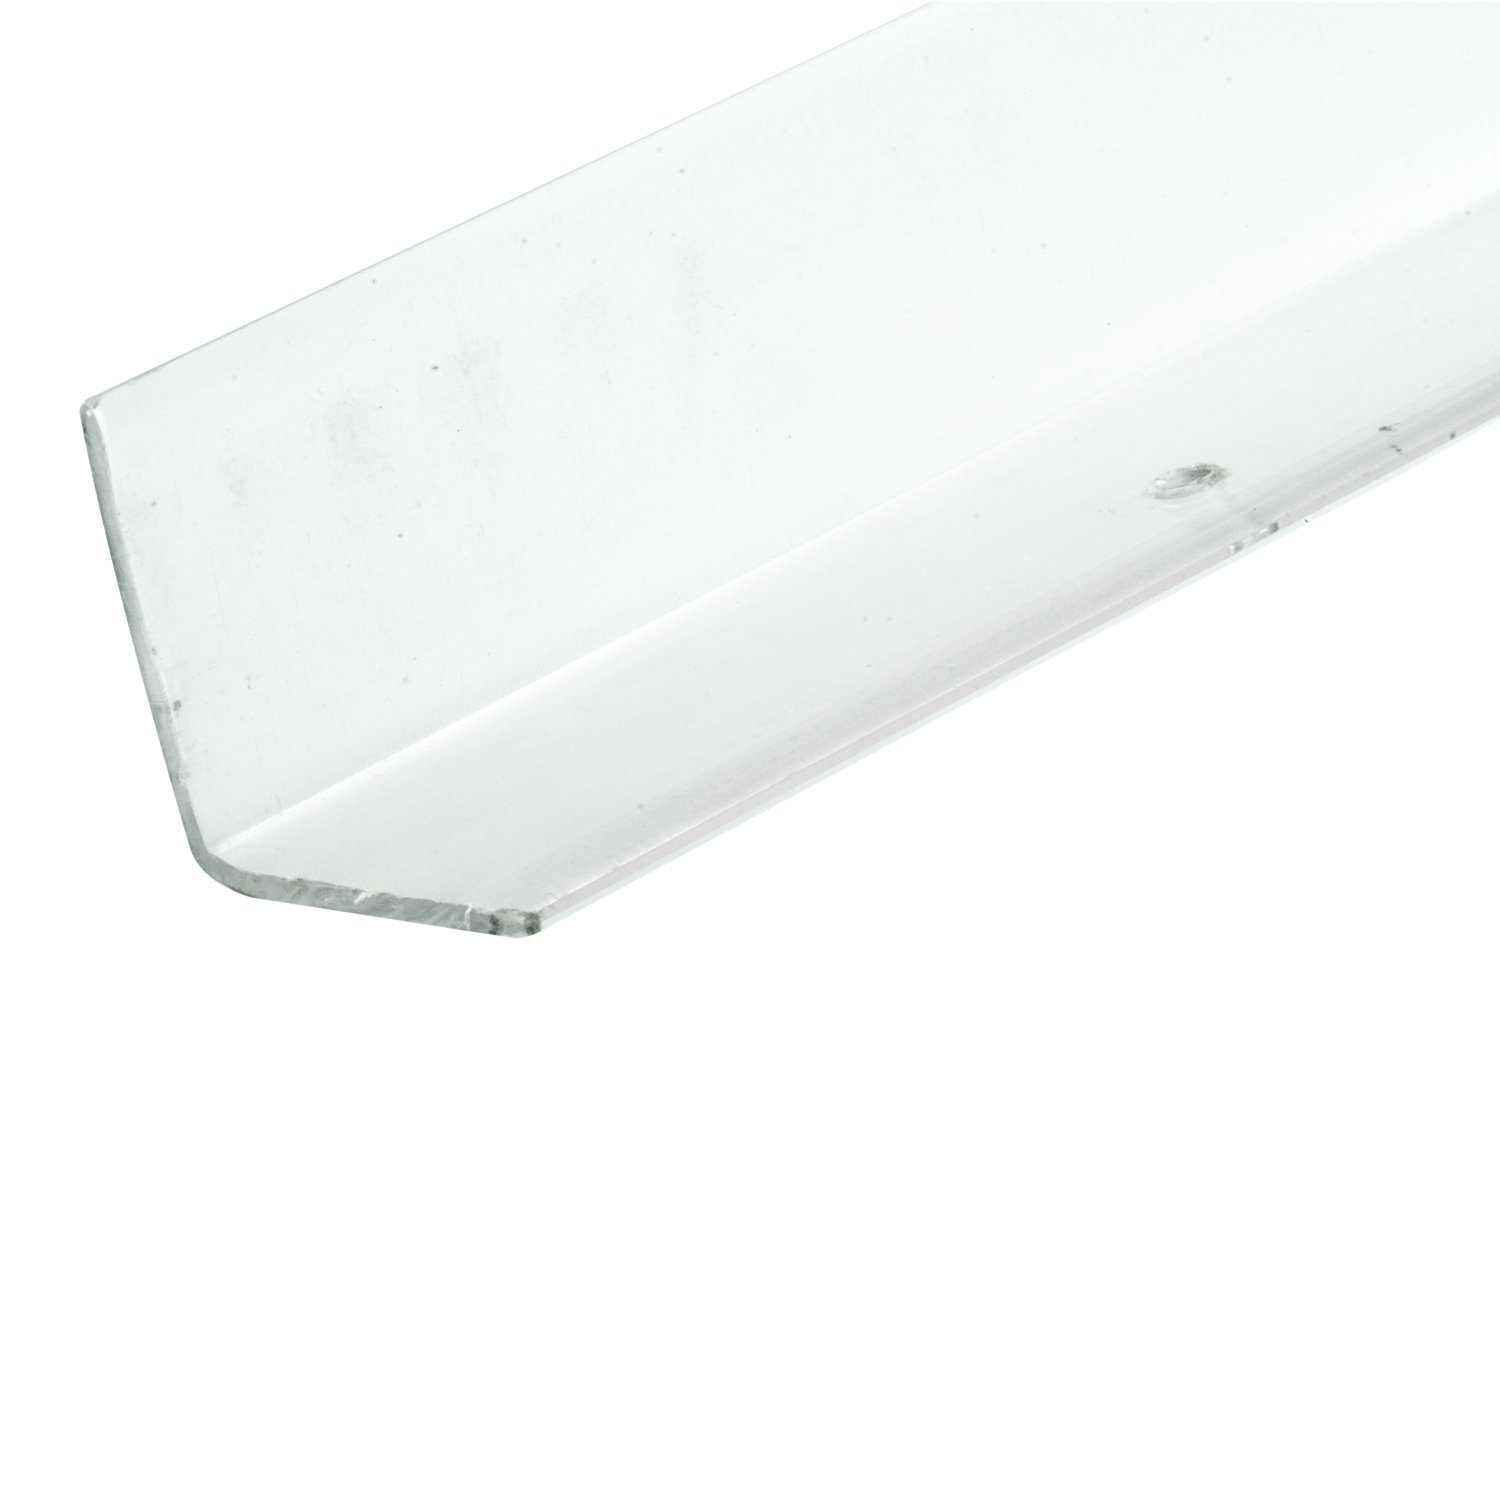 Prime-Line MP10076 Corner Shield With Holes, 1-1/8 in. x 96 in., Vinyl Construction, White, 25 Pack